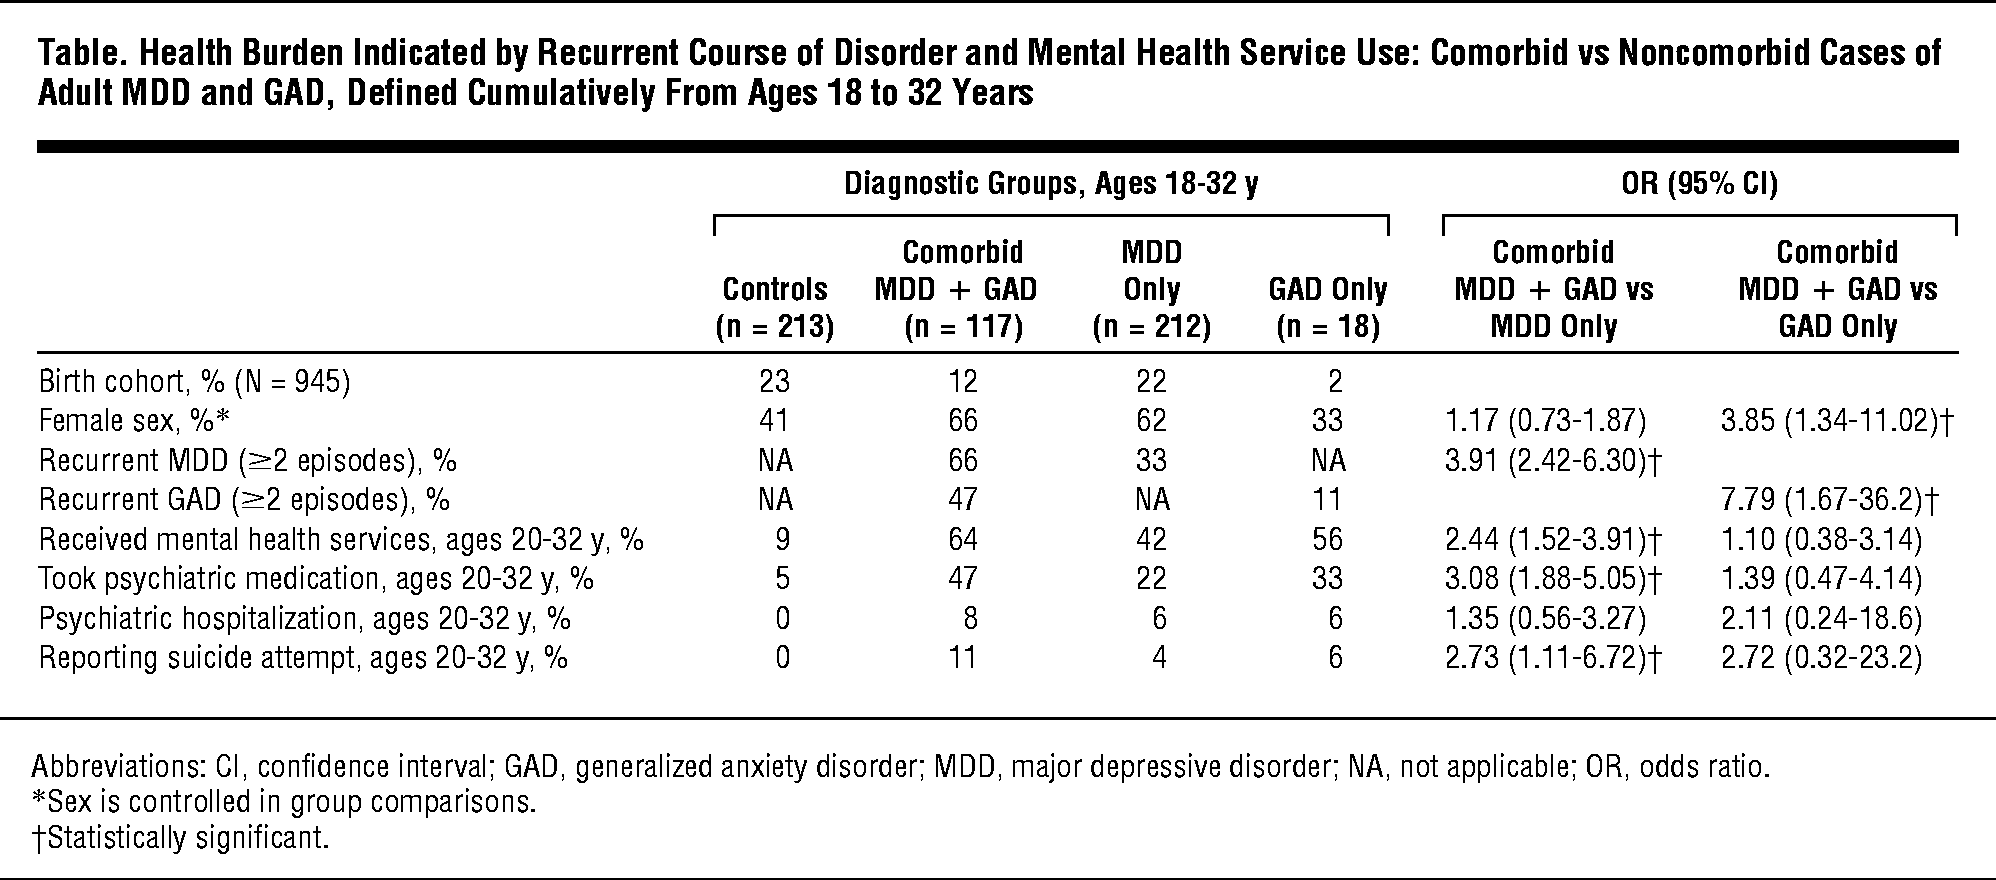 Health Burden Indicated by Recurrent Course of Disorder and Mental Health  Service Use: Comorbid vs